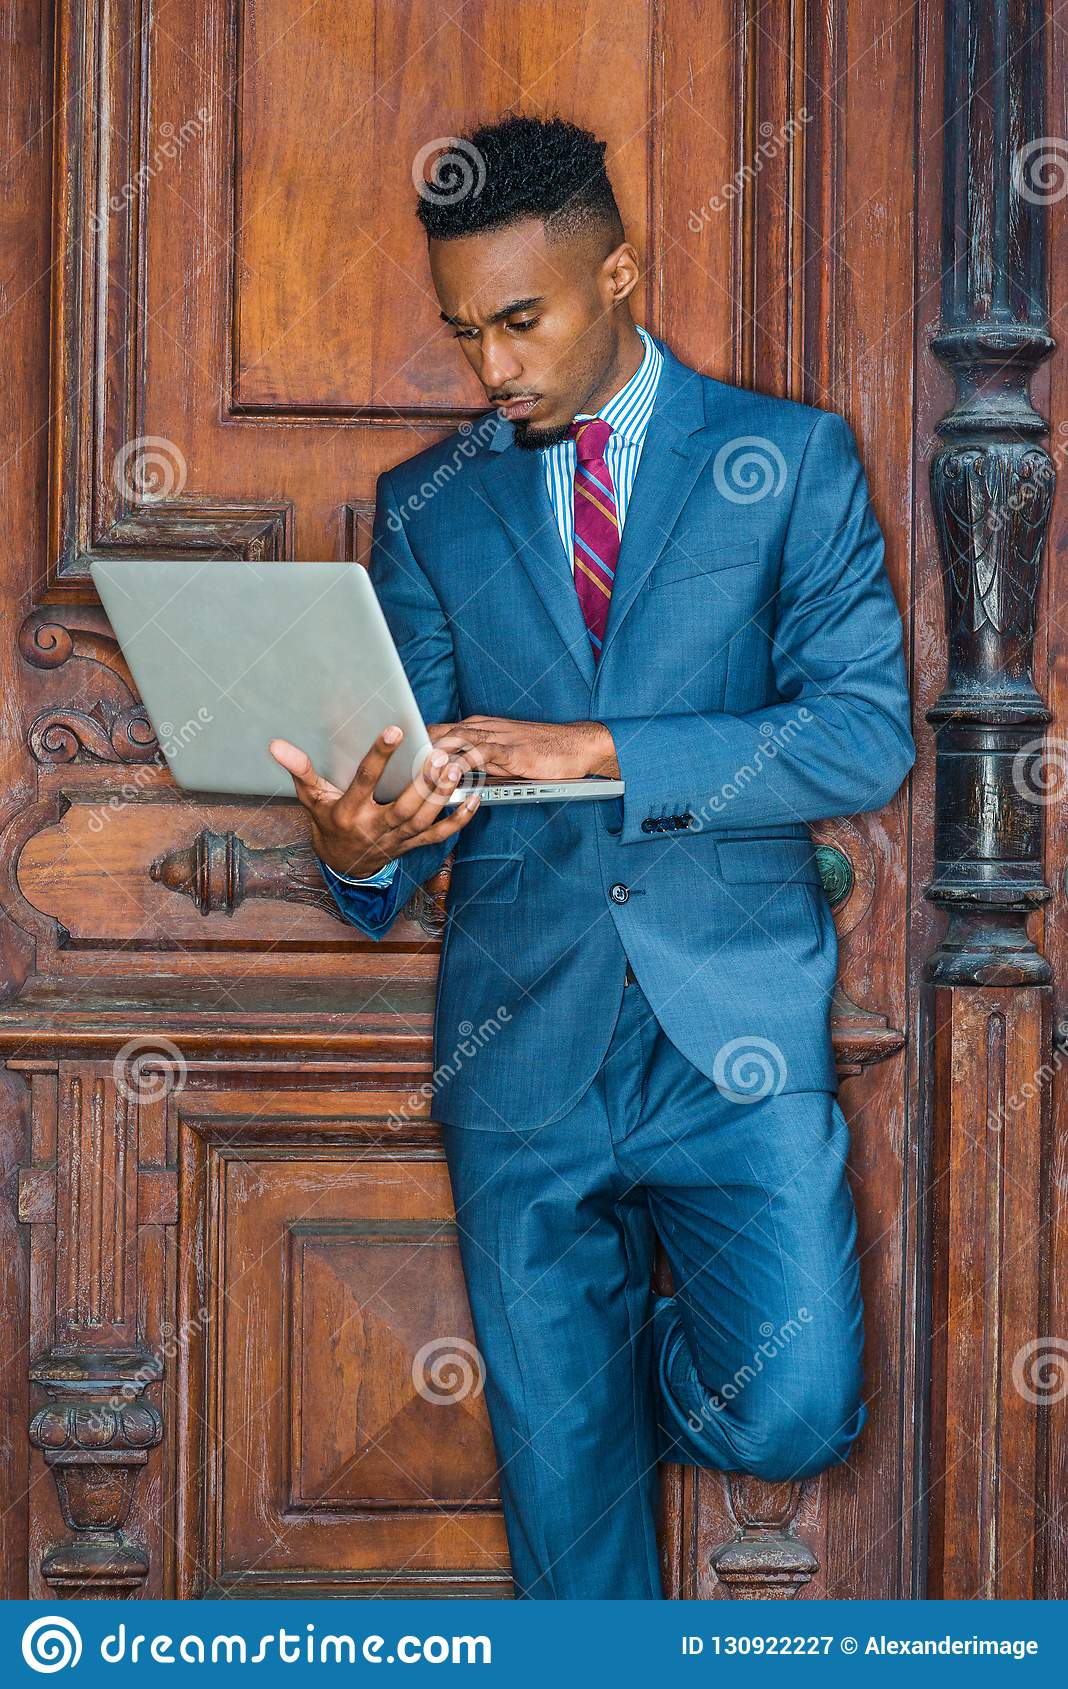 b80fbb95c2 Young African American Businessman with beard working in New York, wearing  sky blue suit, violet red patterned tie, standing by brown vintage office  door, ...